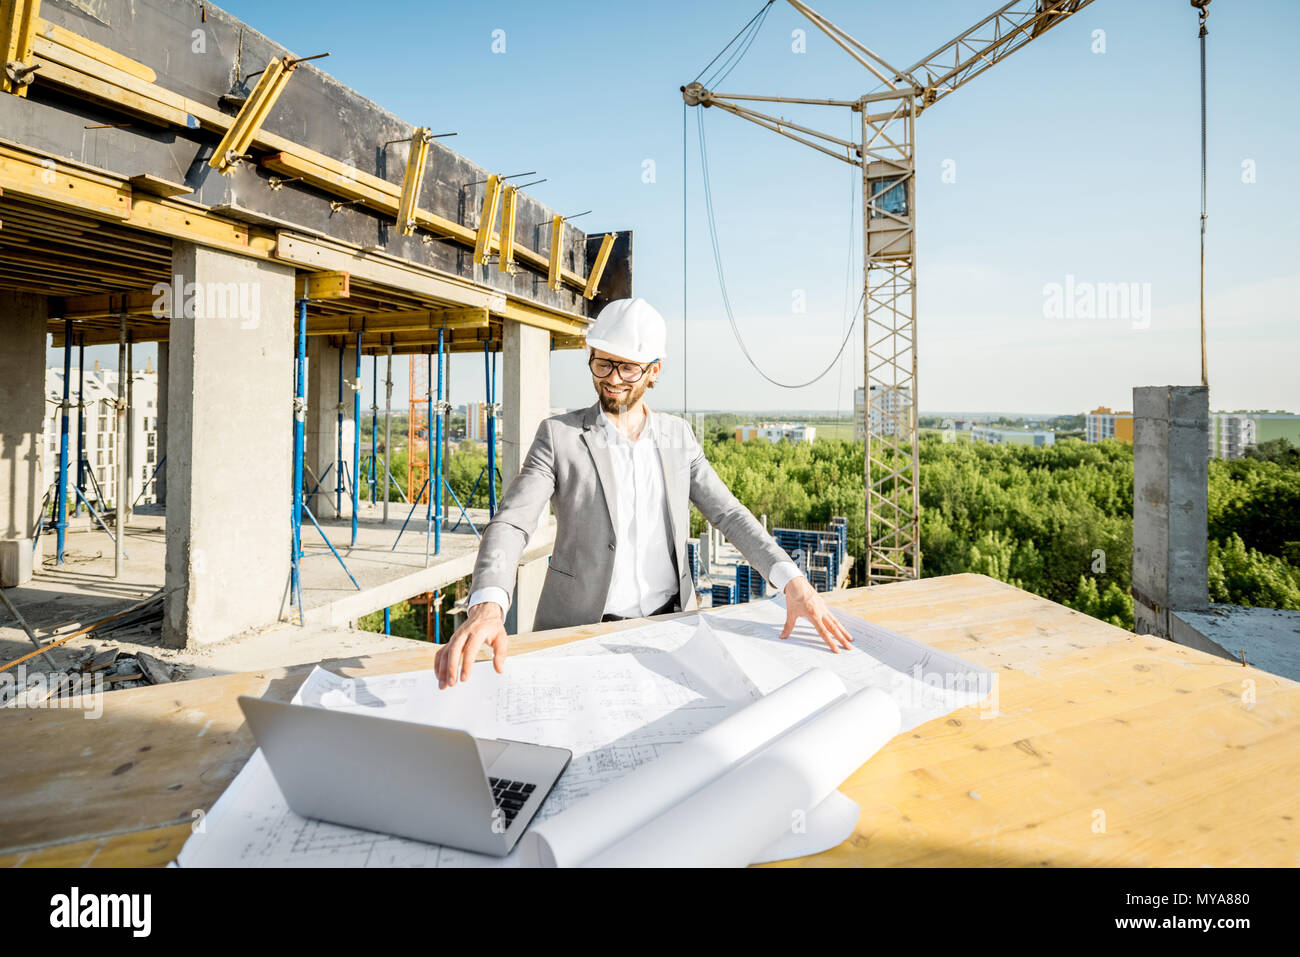 Engineer with drawings on the structure - Stock Image